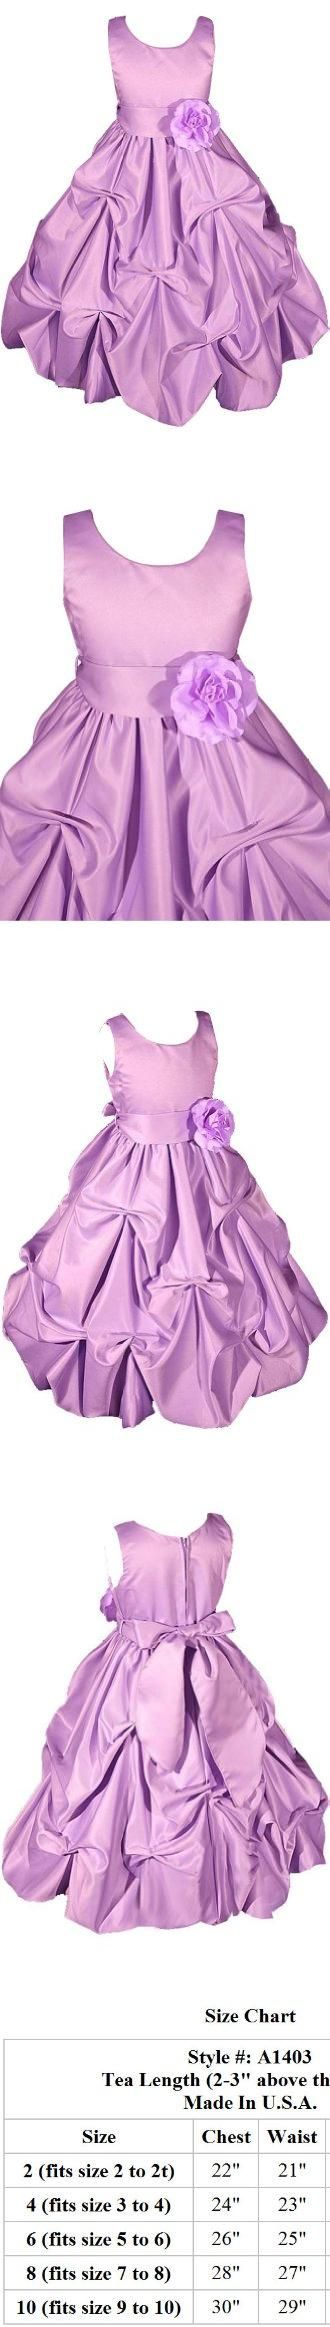 For a flower girl wedding dress pageant holiday dress easter dress